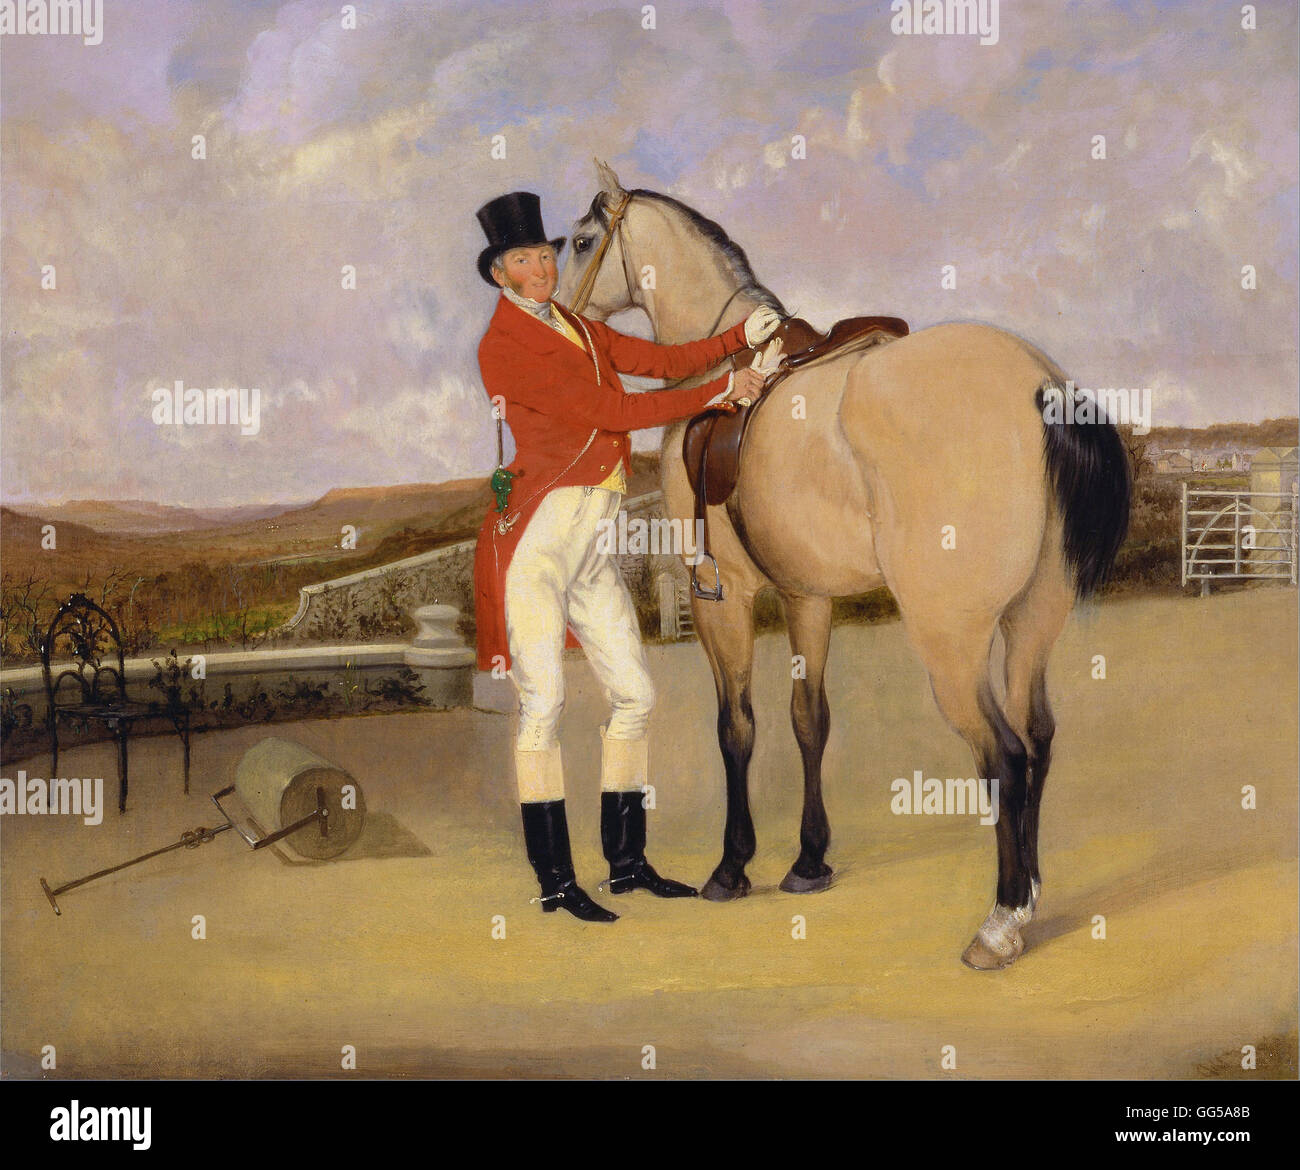 Anson Ambrose Martin - James Taylor Wray of the Bedale Hunt with his Dun Hunter - Stock Image